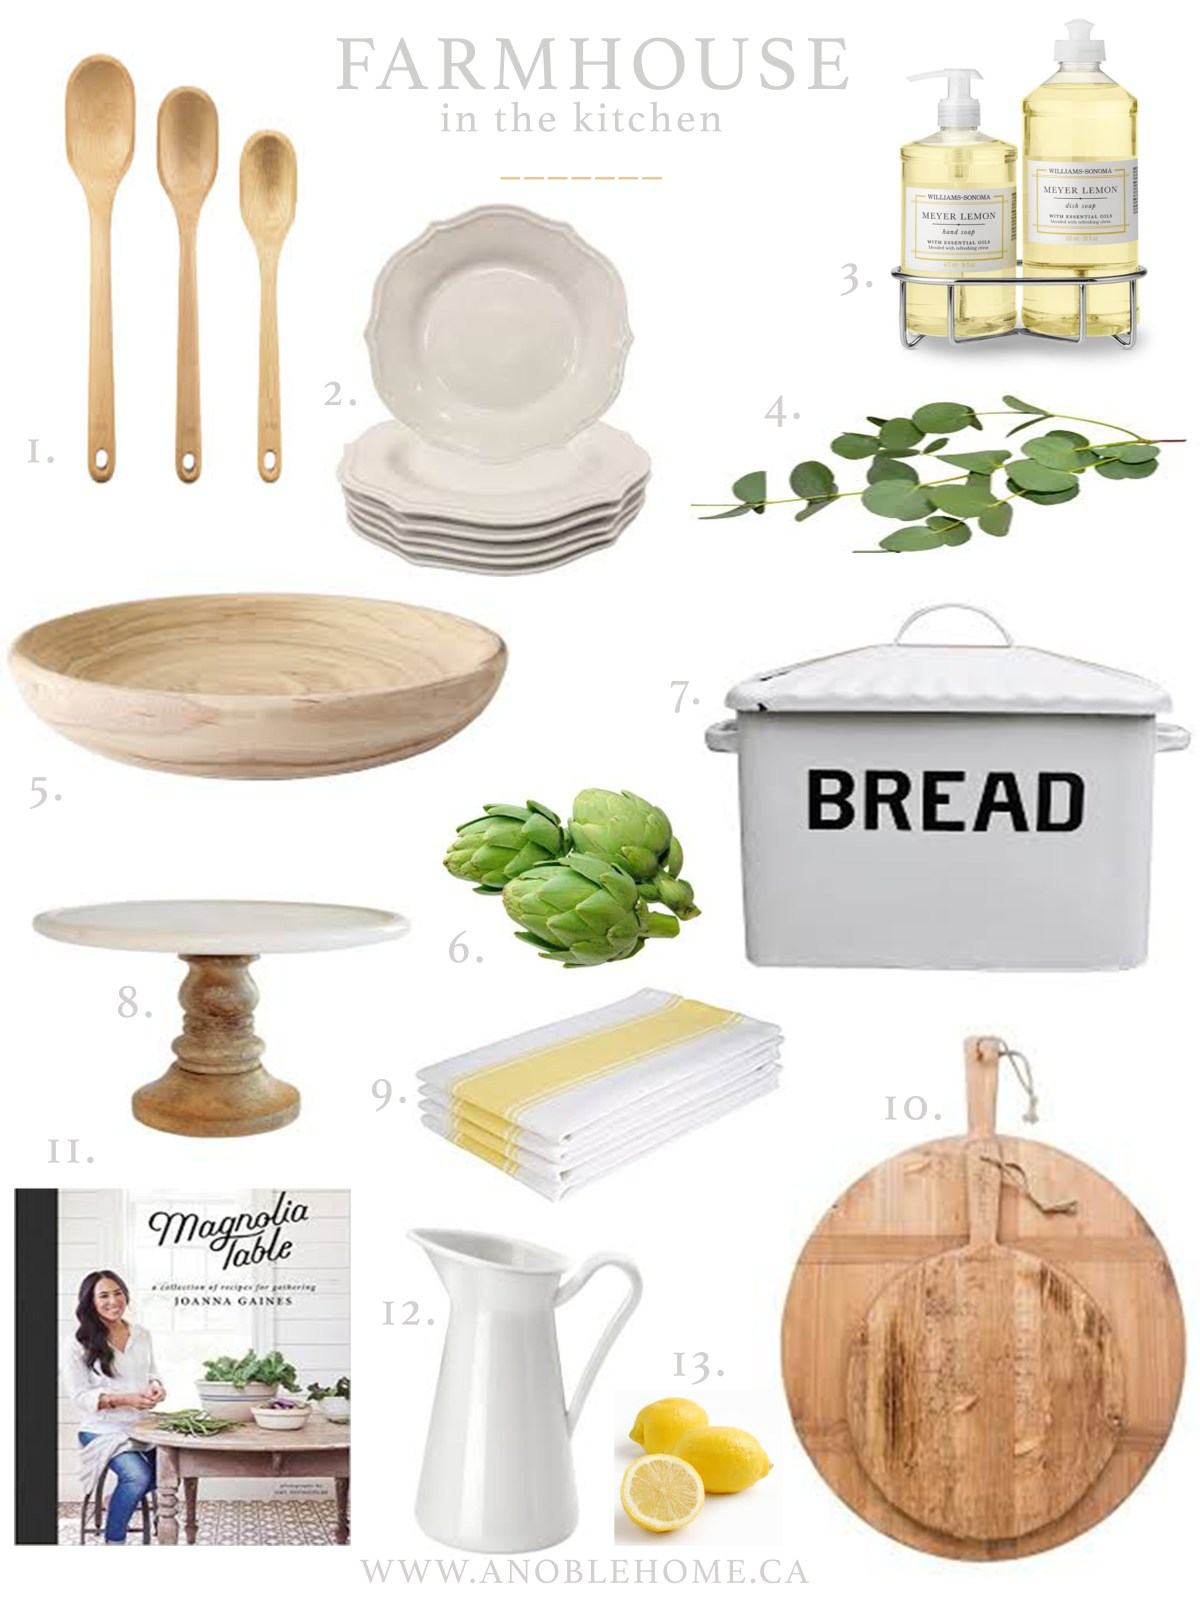 Adding a Touch of Farmhouse to your Kitchen